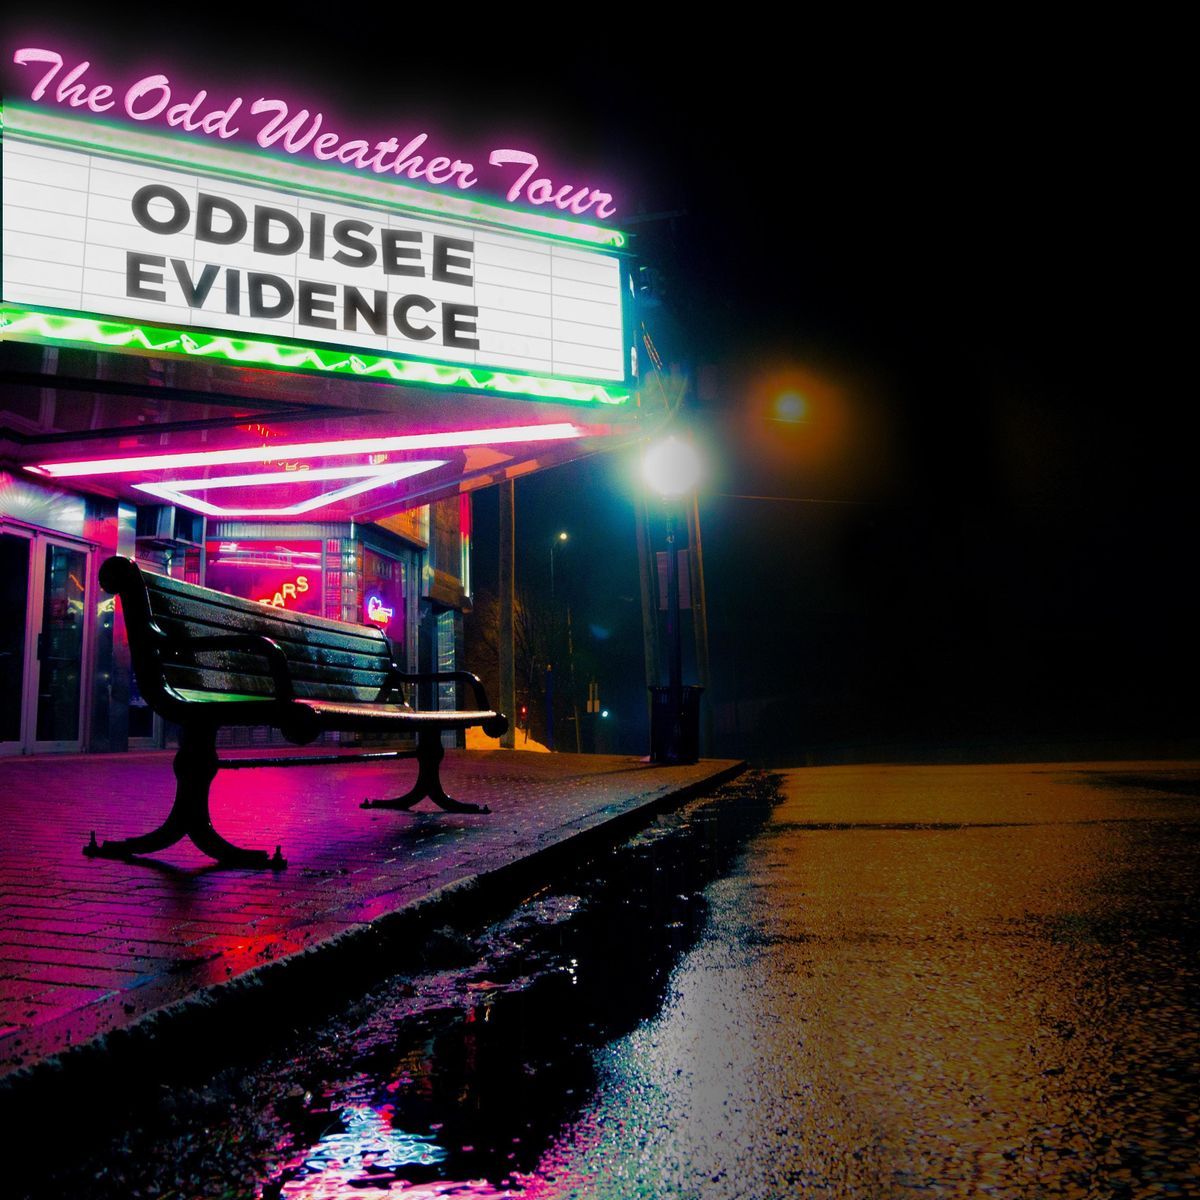 Oddisee & Evidence (The Odd Weather Tour)